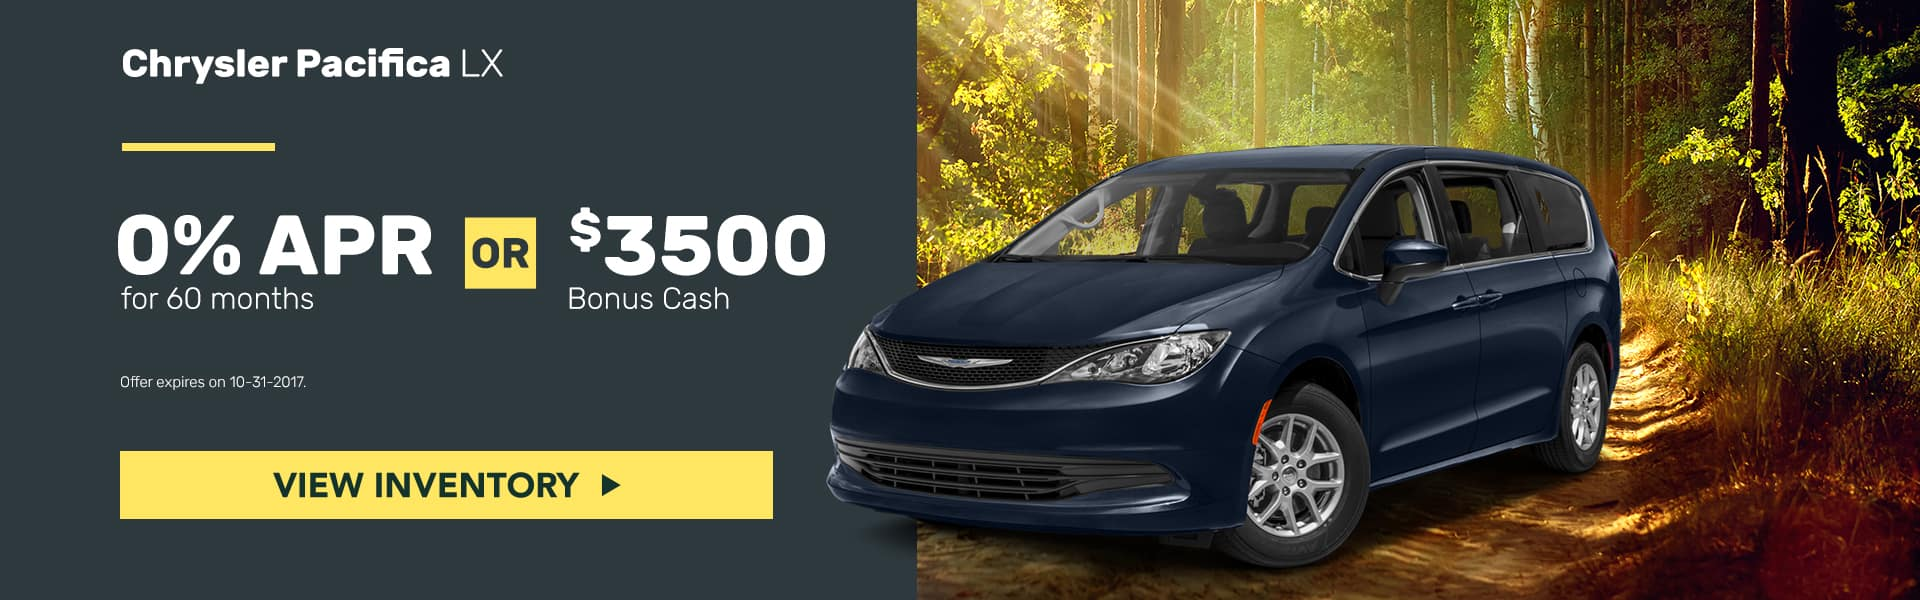 Chrysler Pacifica October Offer Mancari's